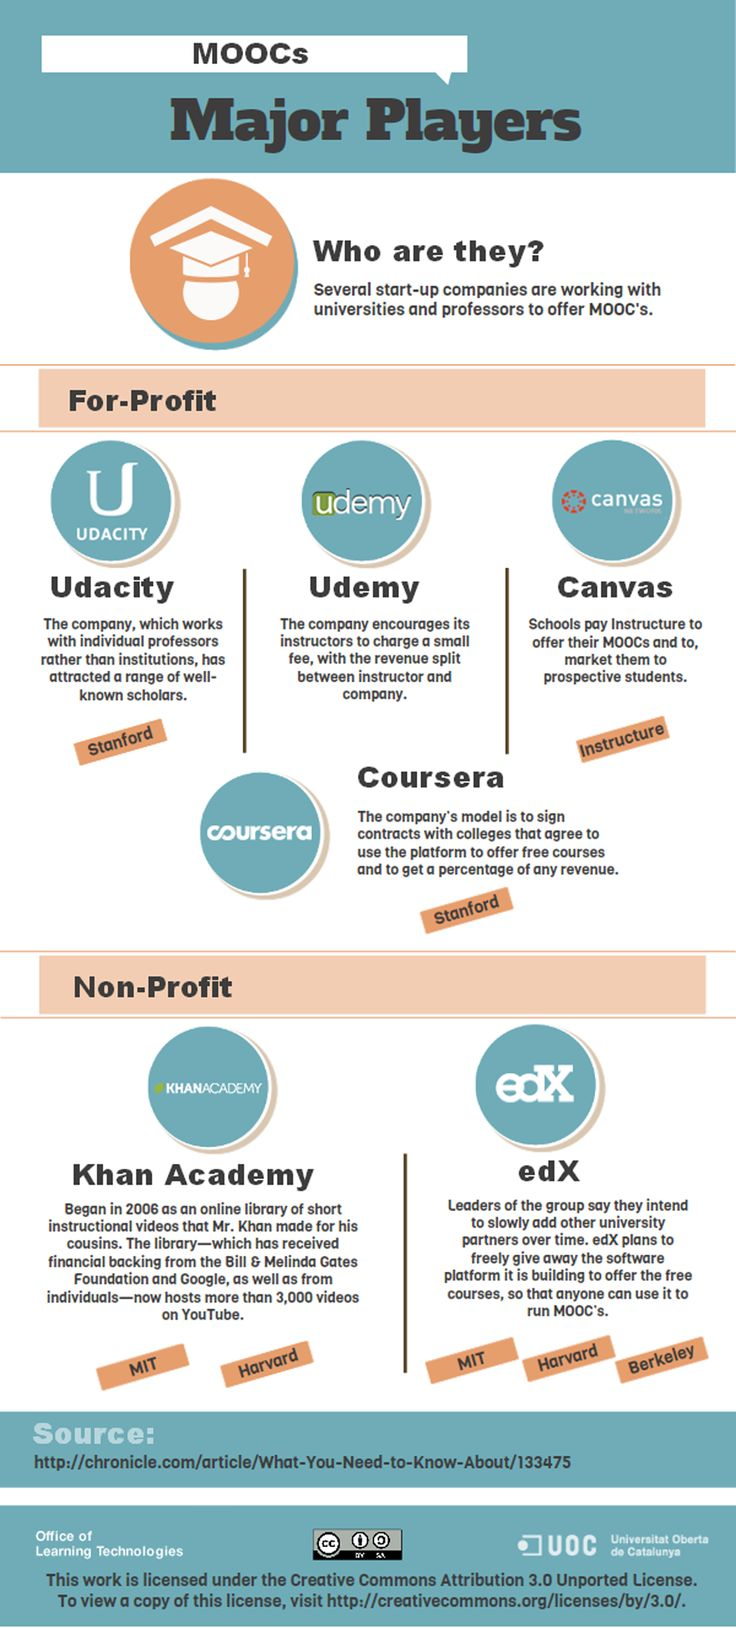 #MOOCs major players - Study something new with online learning